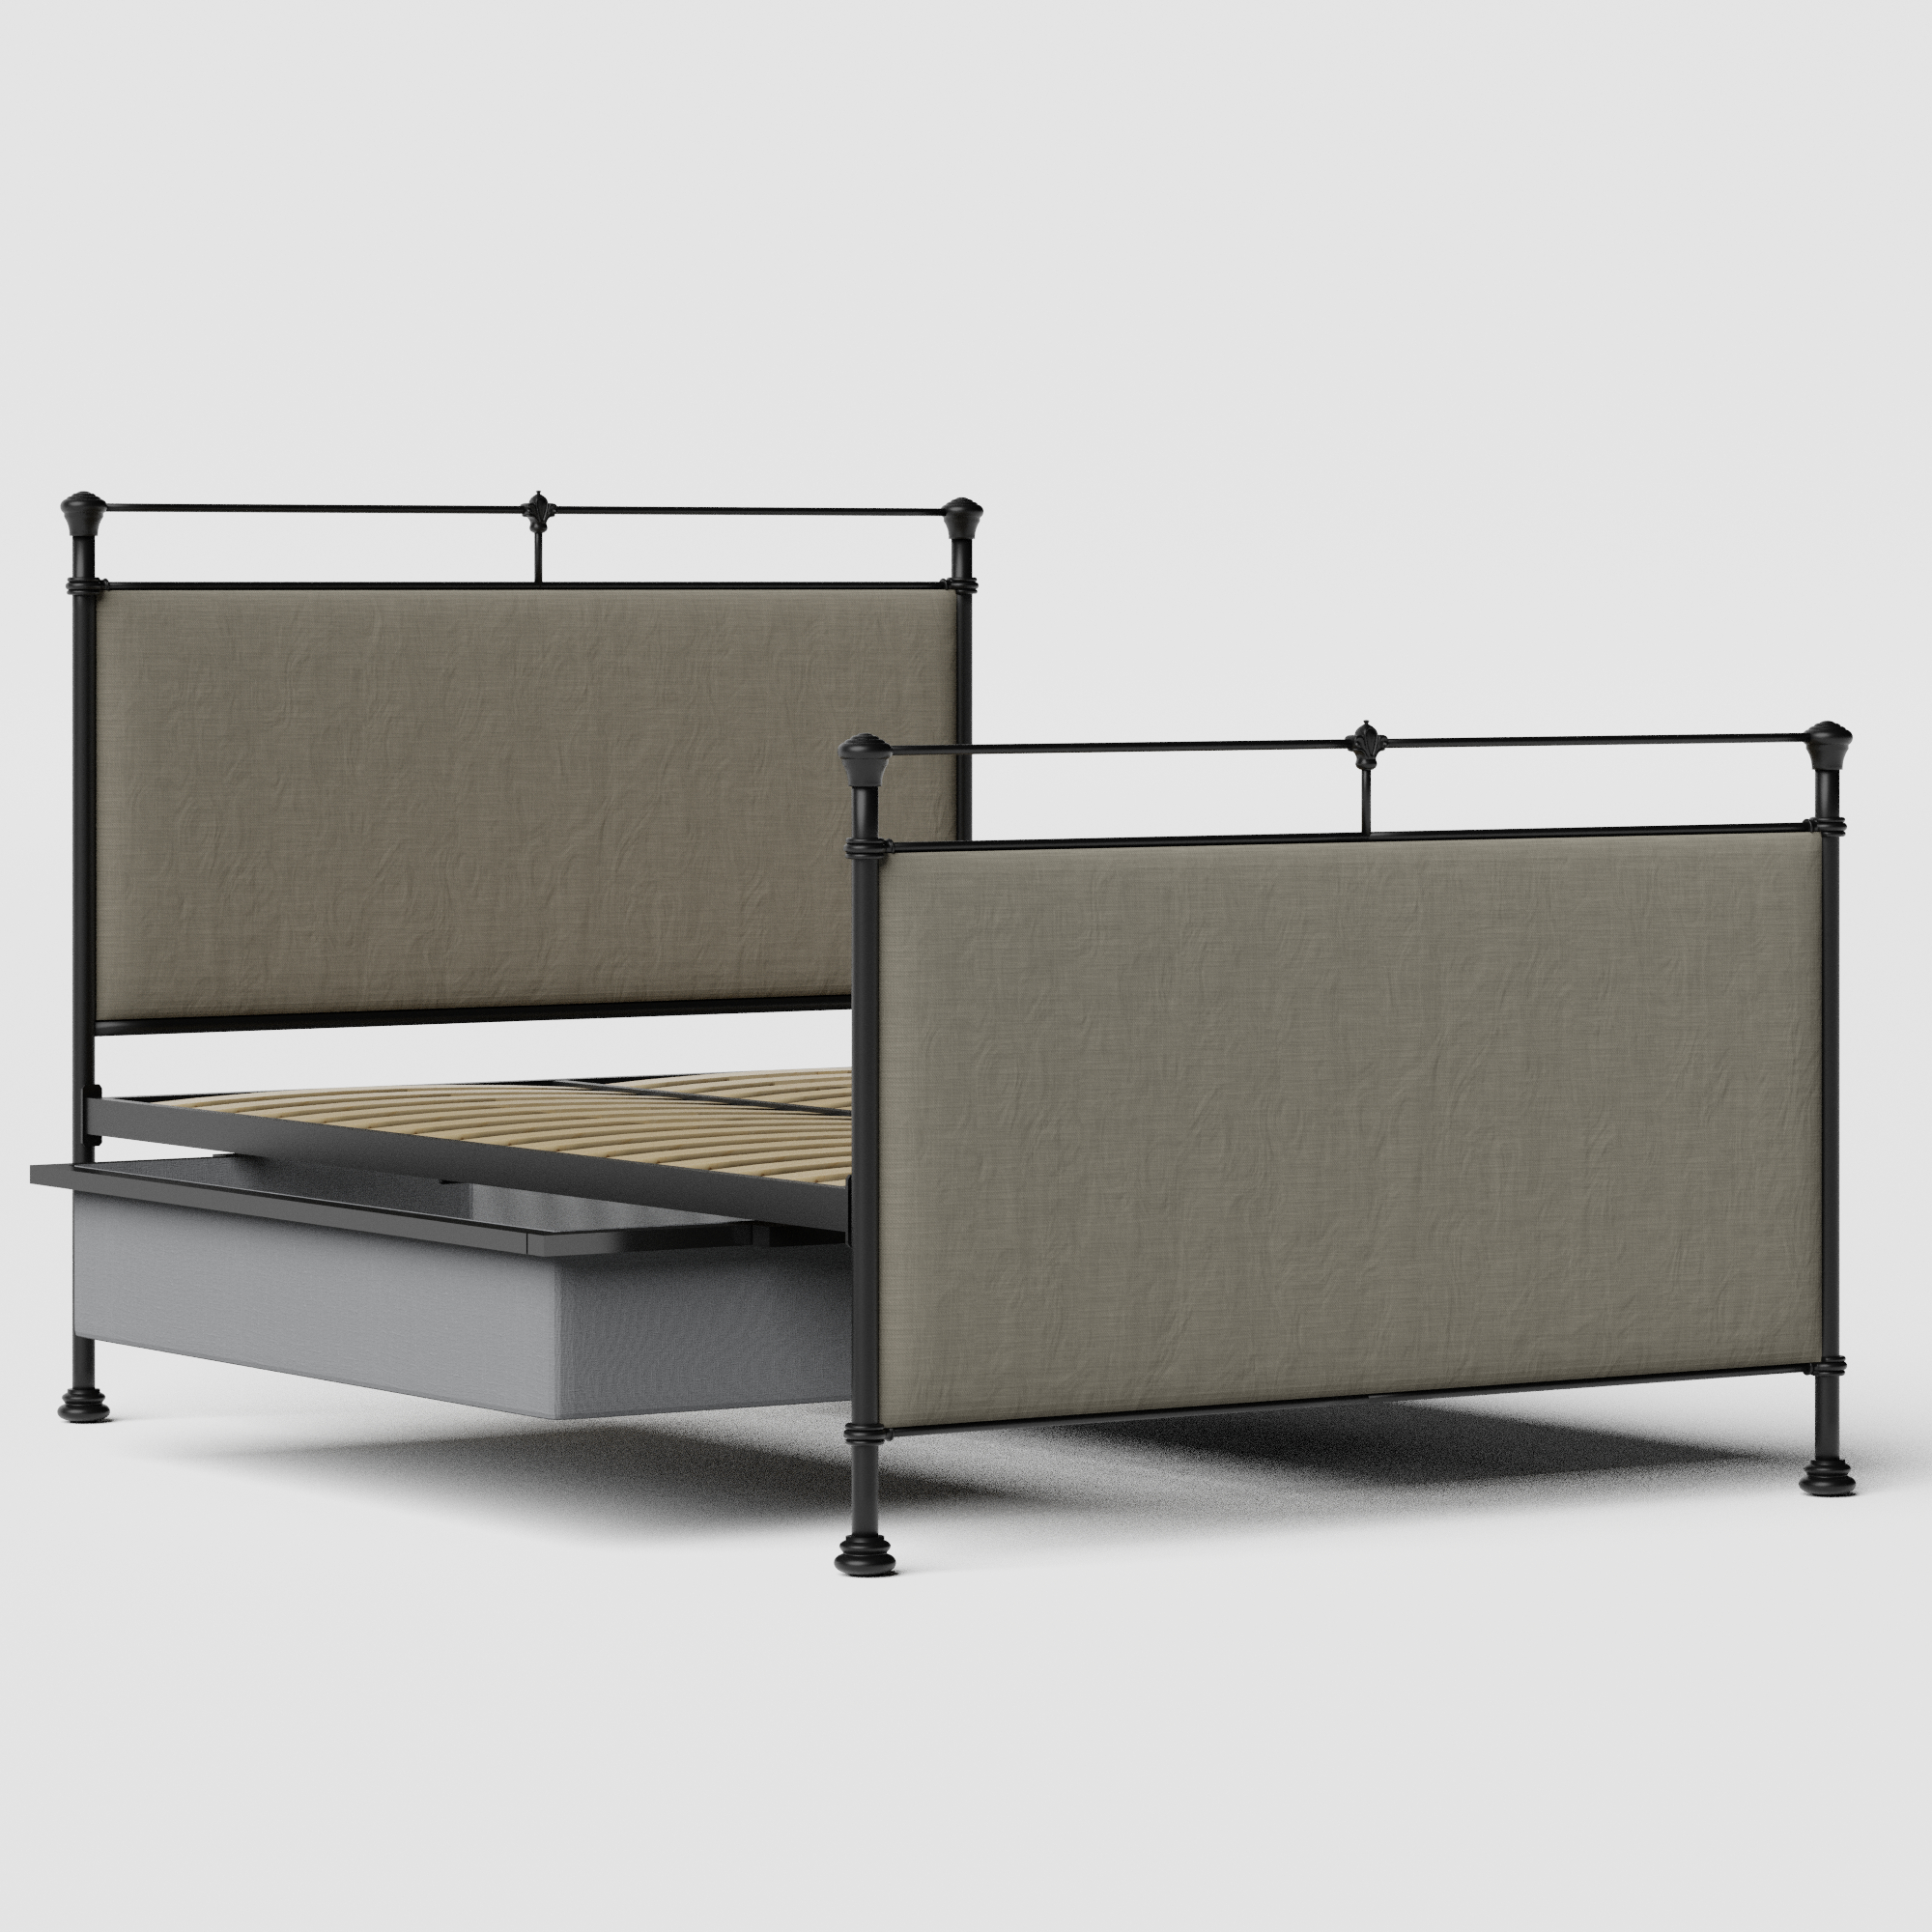 Lille iron/metal upholstered bed in black with drawers